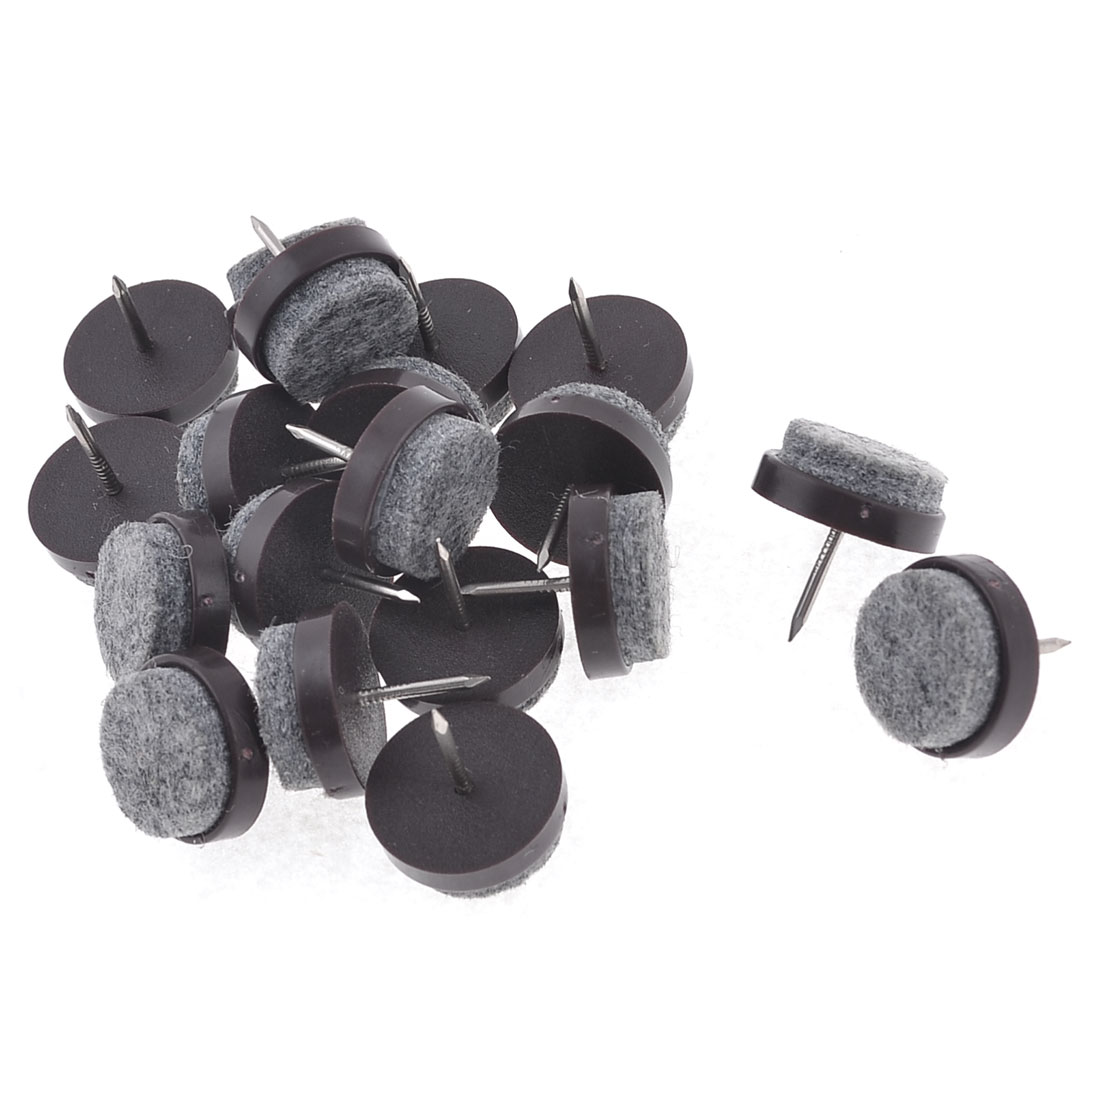 20Pcs Home School Office Round Head Thumb Tacks Push Pins 20mm High Brown